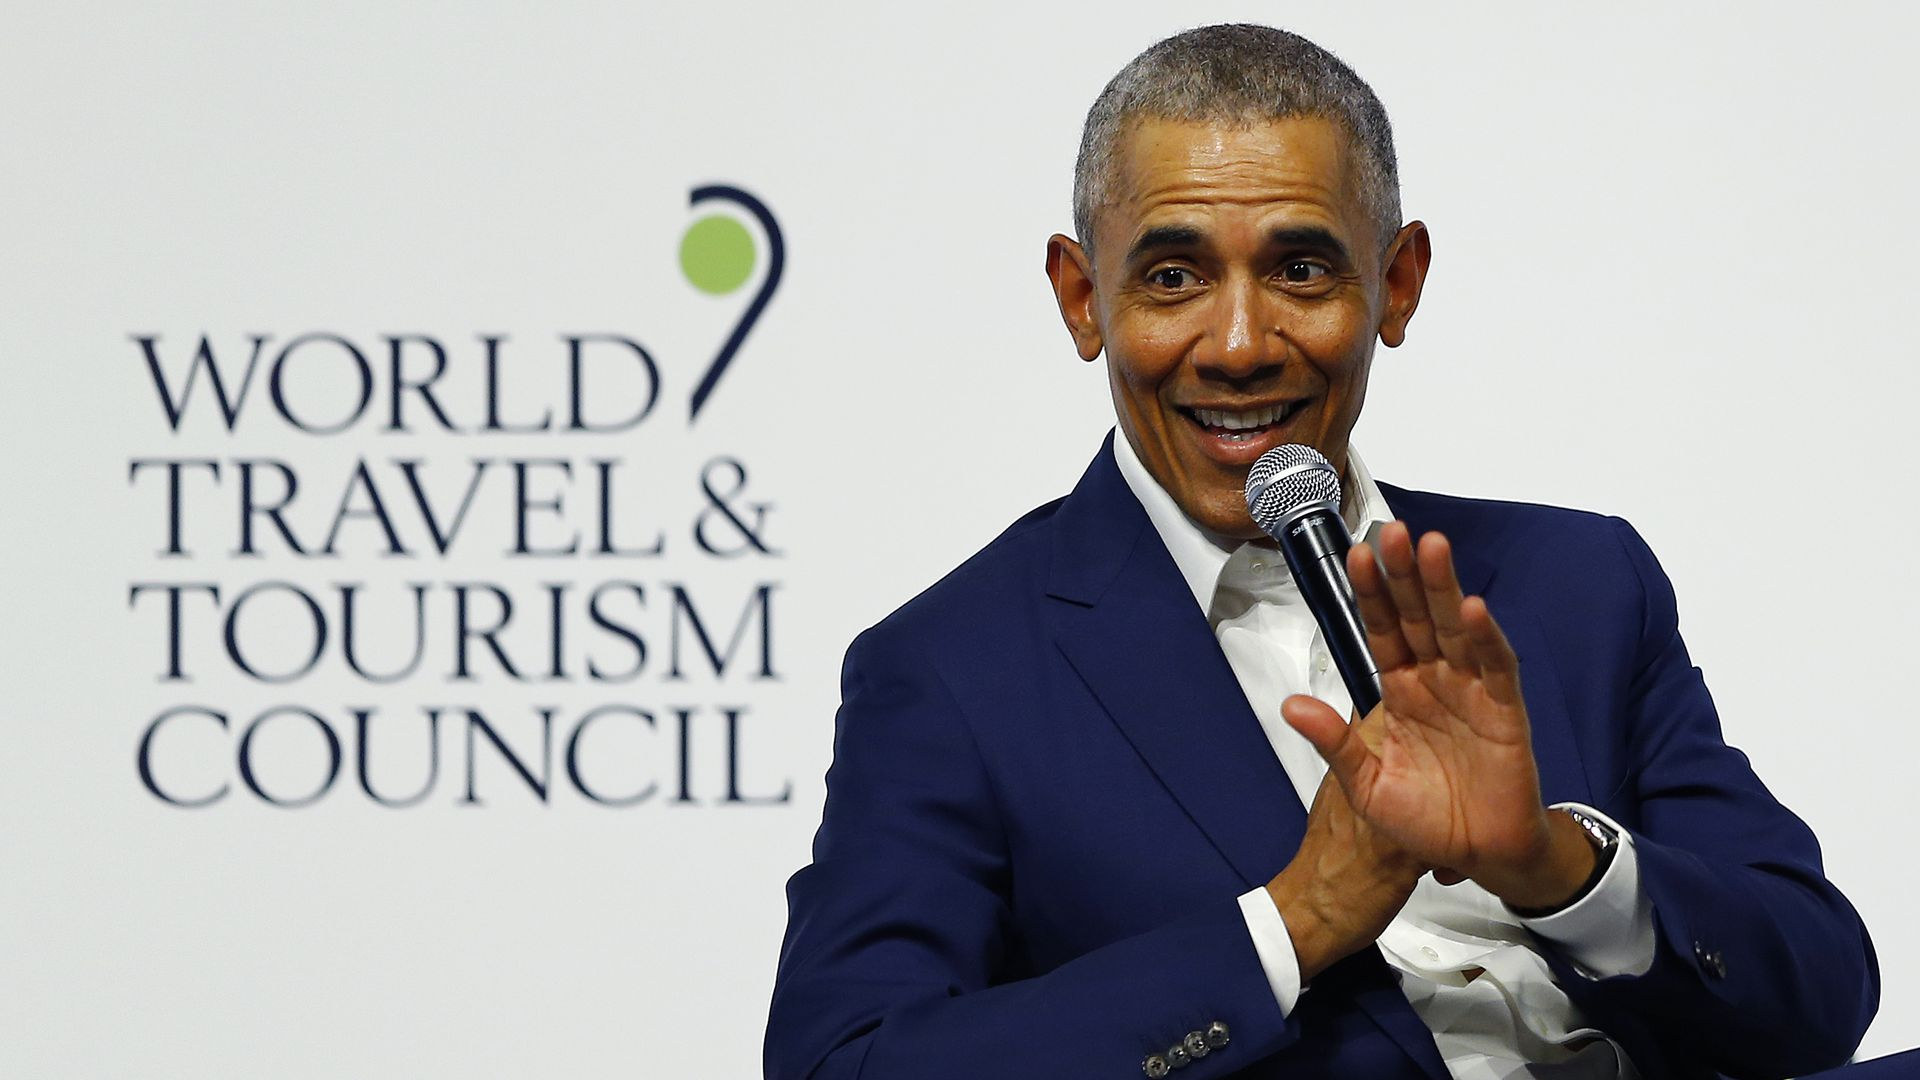 In this image, Obama sits in a chair and waves to the audience while smiling and speaking into a microphone.